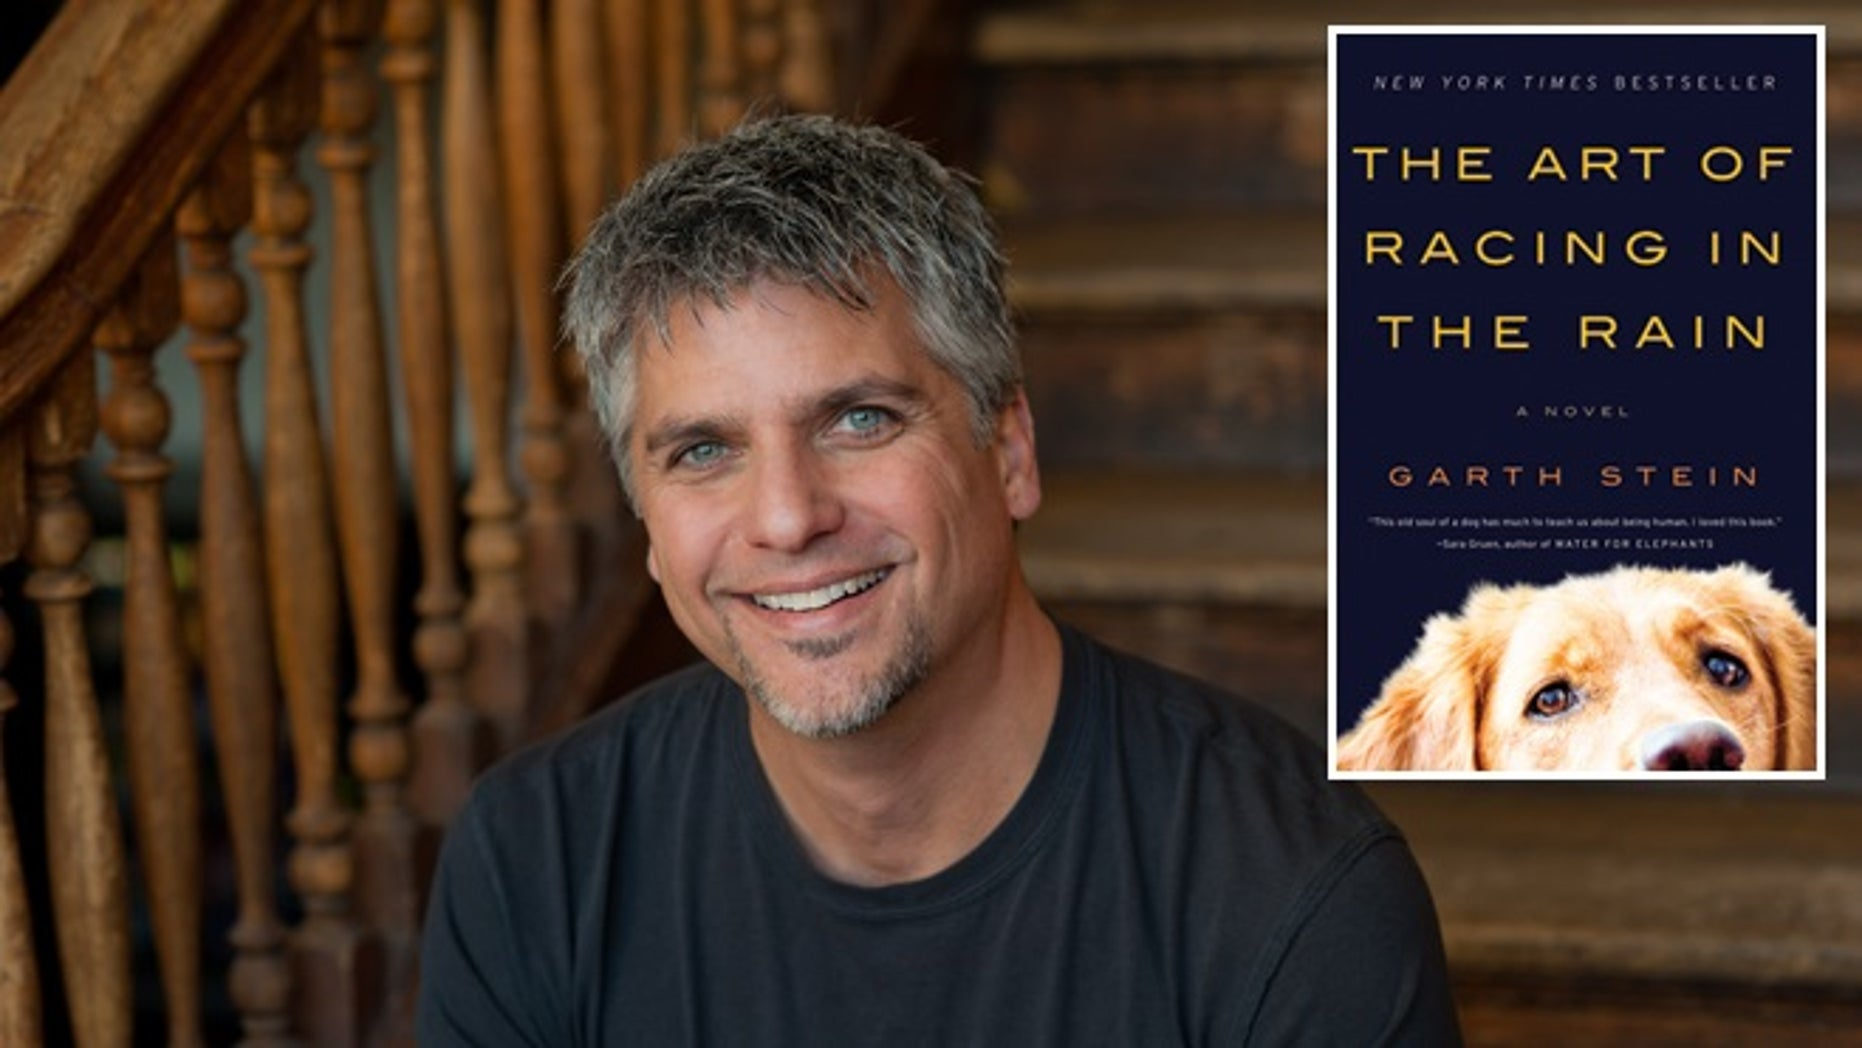 """New York Times bestseller """"The Art of Racing in the Rain"""" (inset) by Garth Stein was removed from the English curriculum of the Highland Park School District in Dallas after parents logged complaints about the material."""